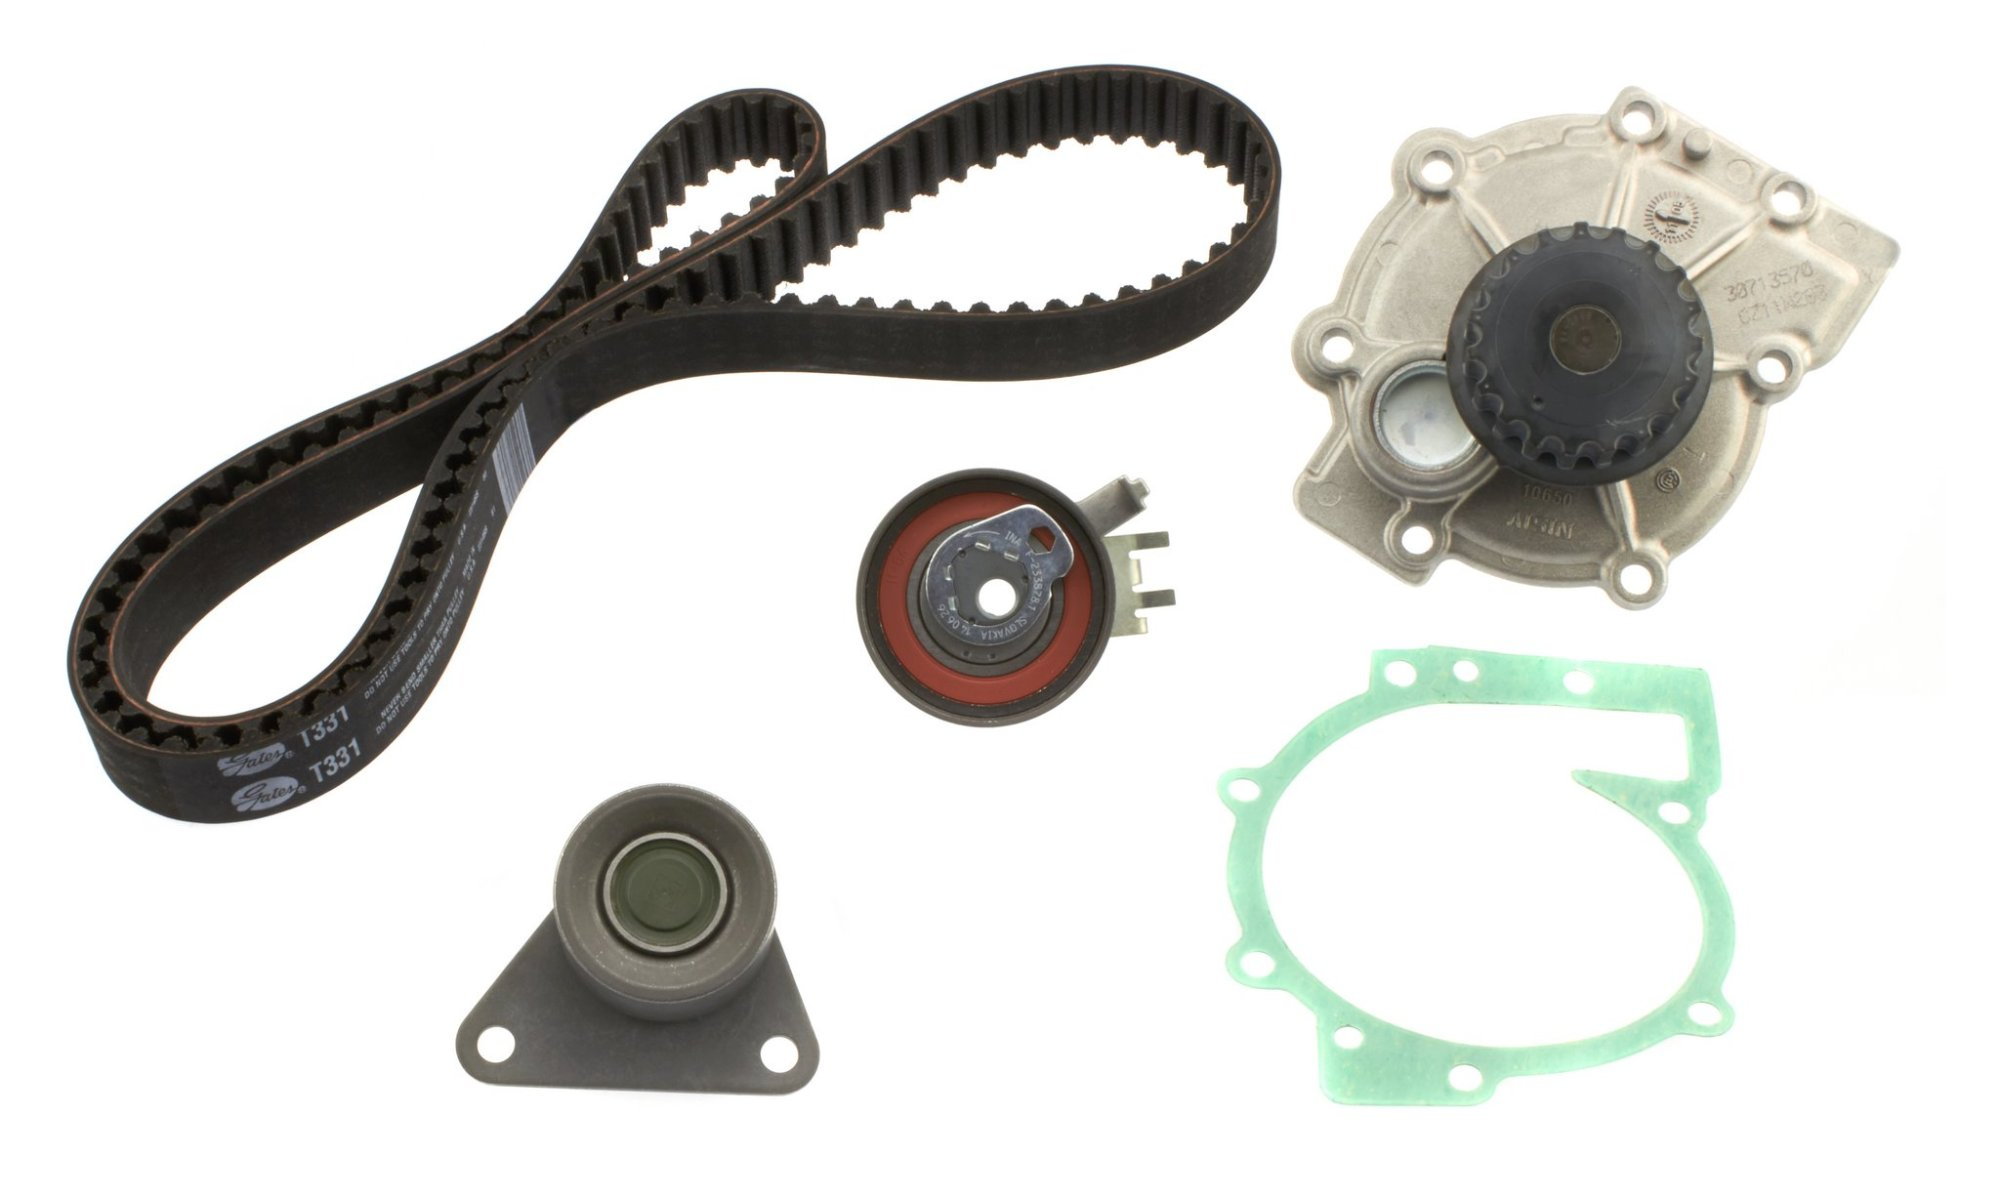 hight resolution of 2009 volvo s60 engine timing belt kit with water pump a8 tkv 001